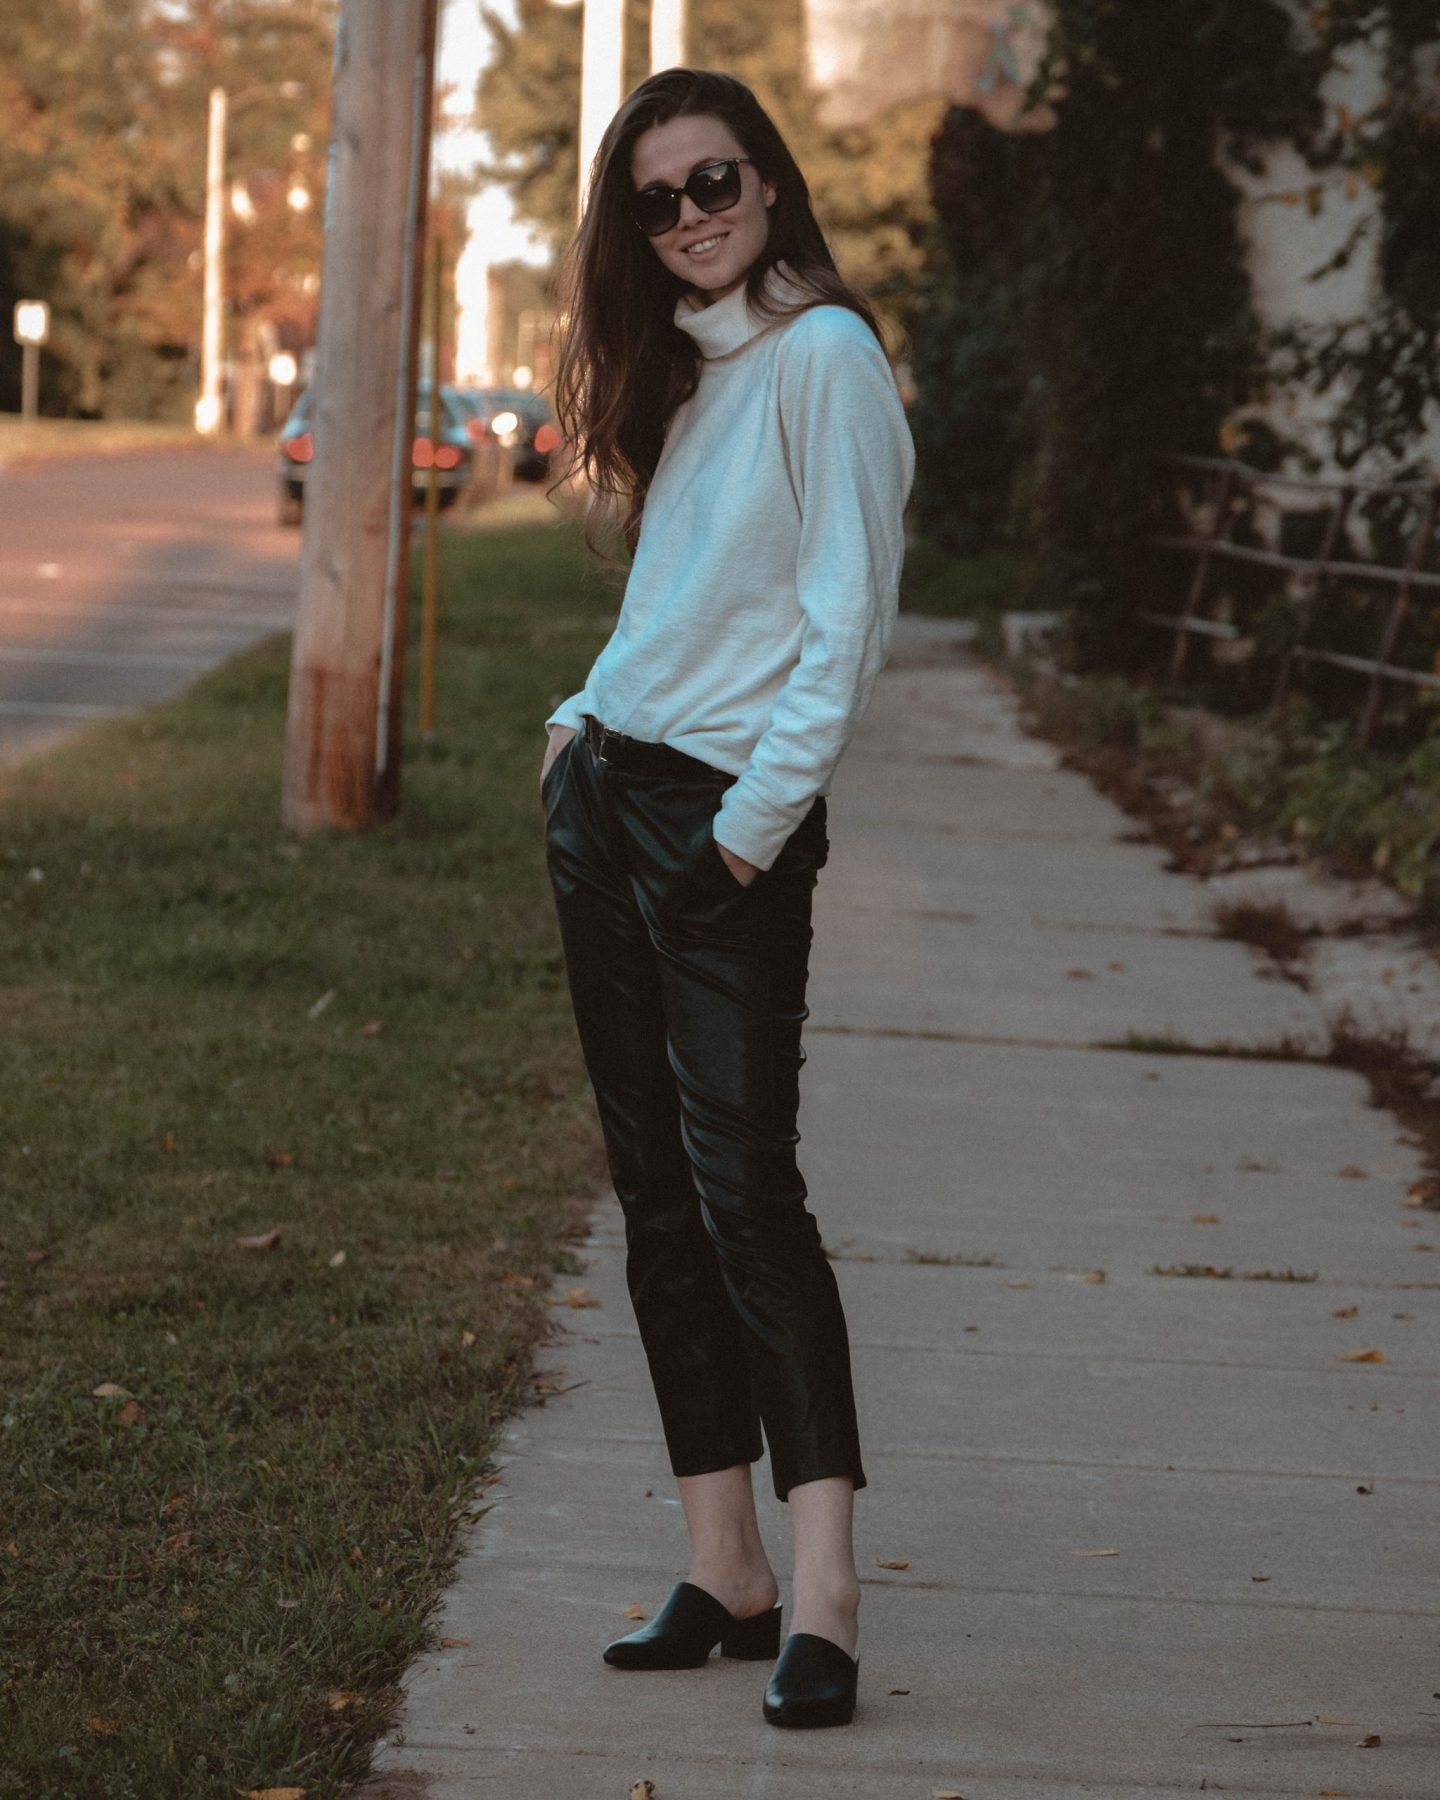 How to Find Personal Style   How to   Monochrome Minimalist   Autumn Fashion